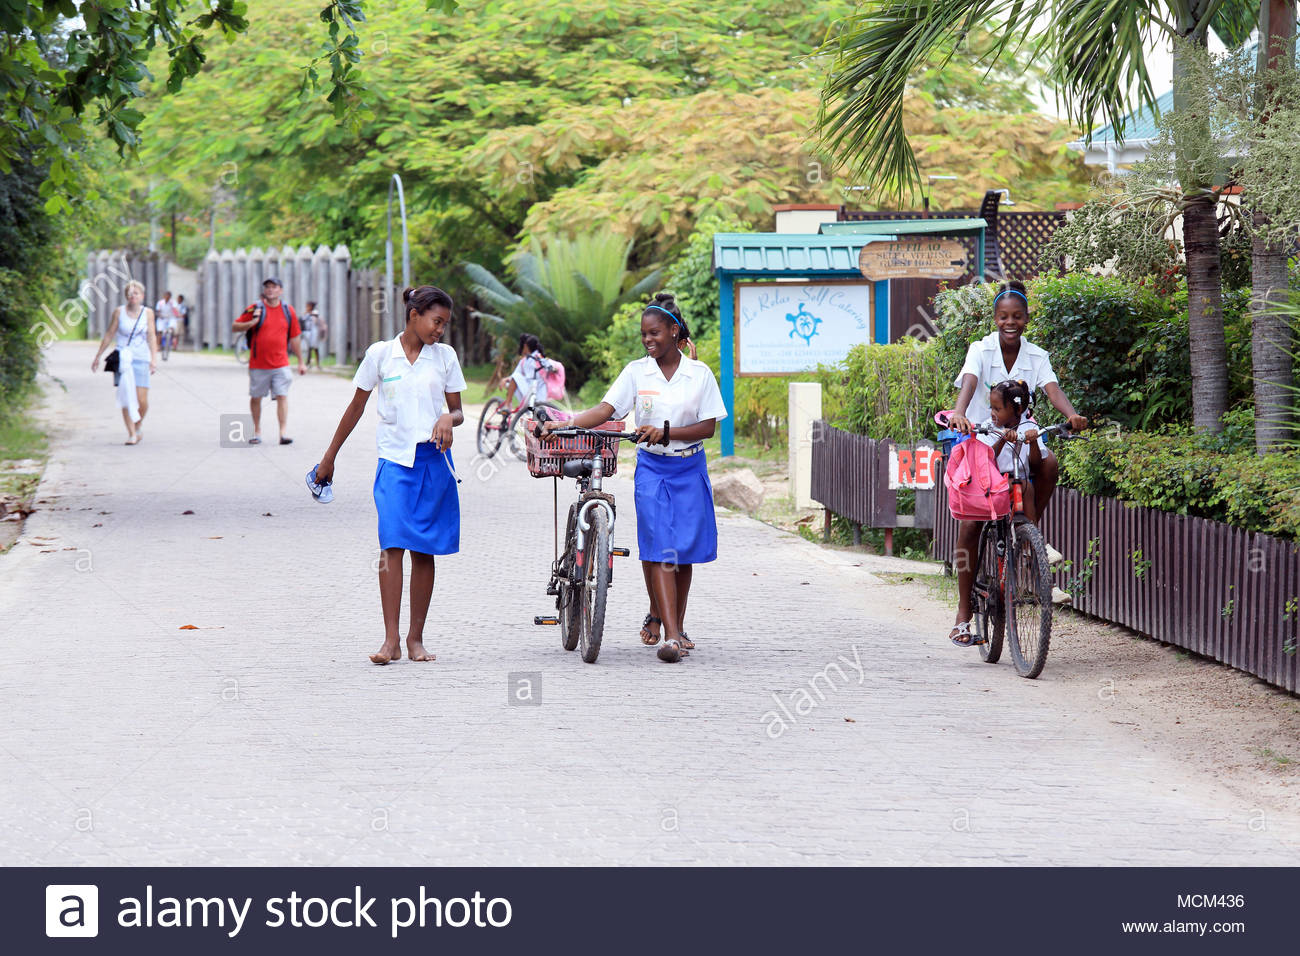 La Passe, La Digue Island, Seychelles - March 5, 2014: Students leaving the school on bicycles. - Stock Image